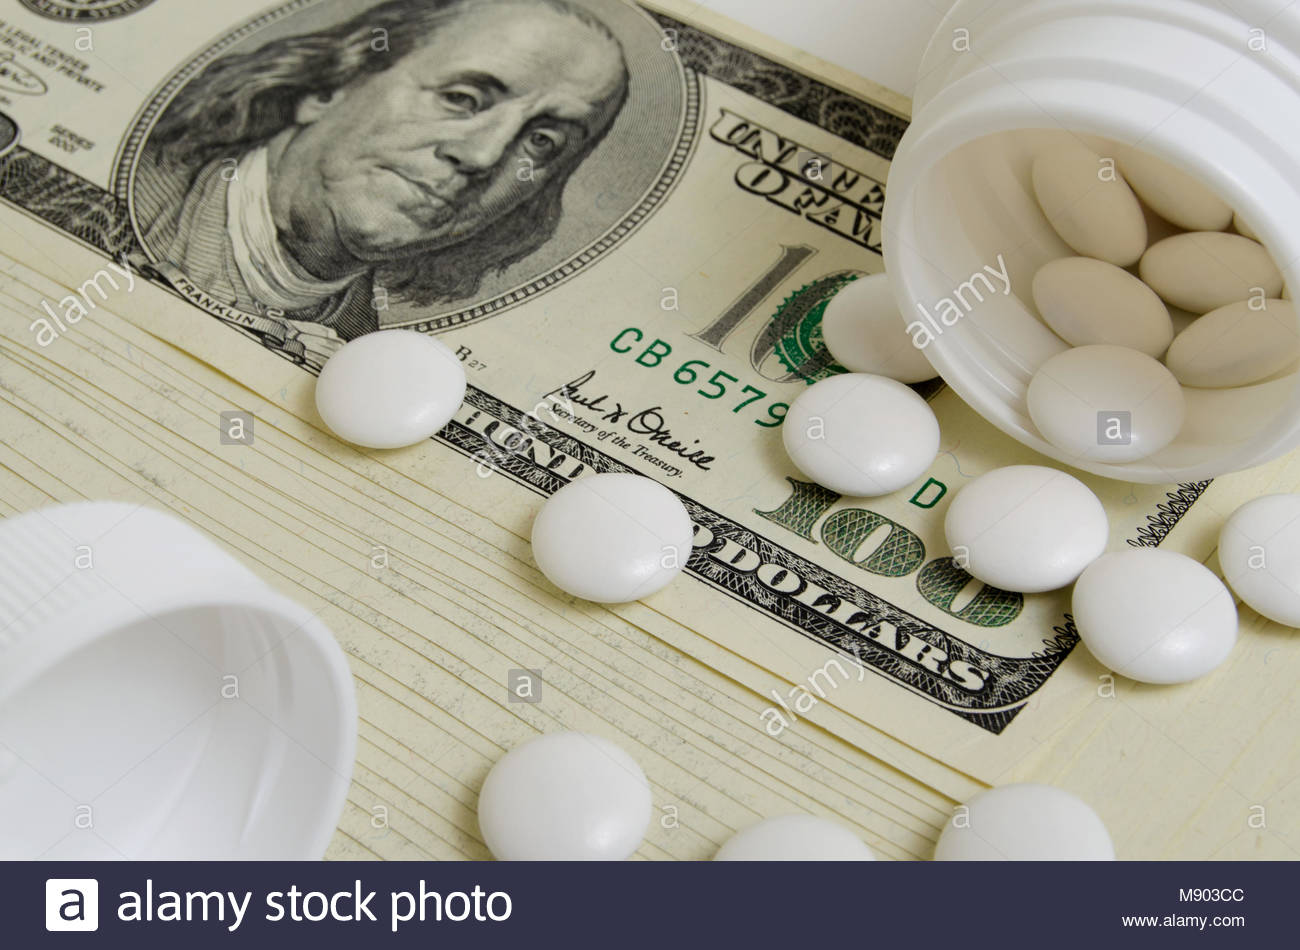 Speculation medicines and pharmaceutical machinations concerns. - Stock Image